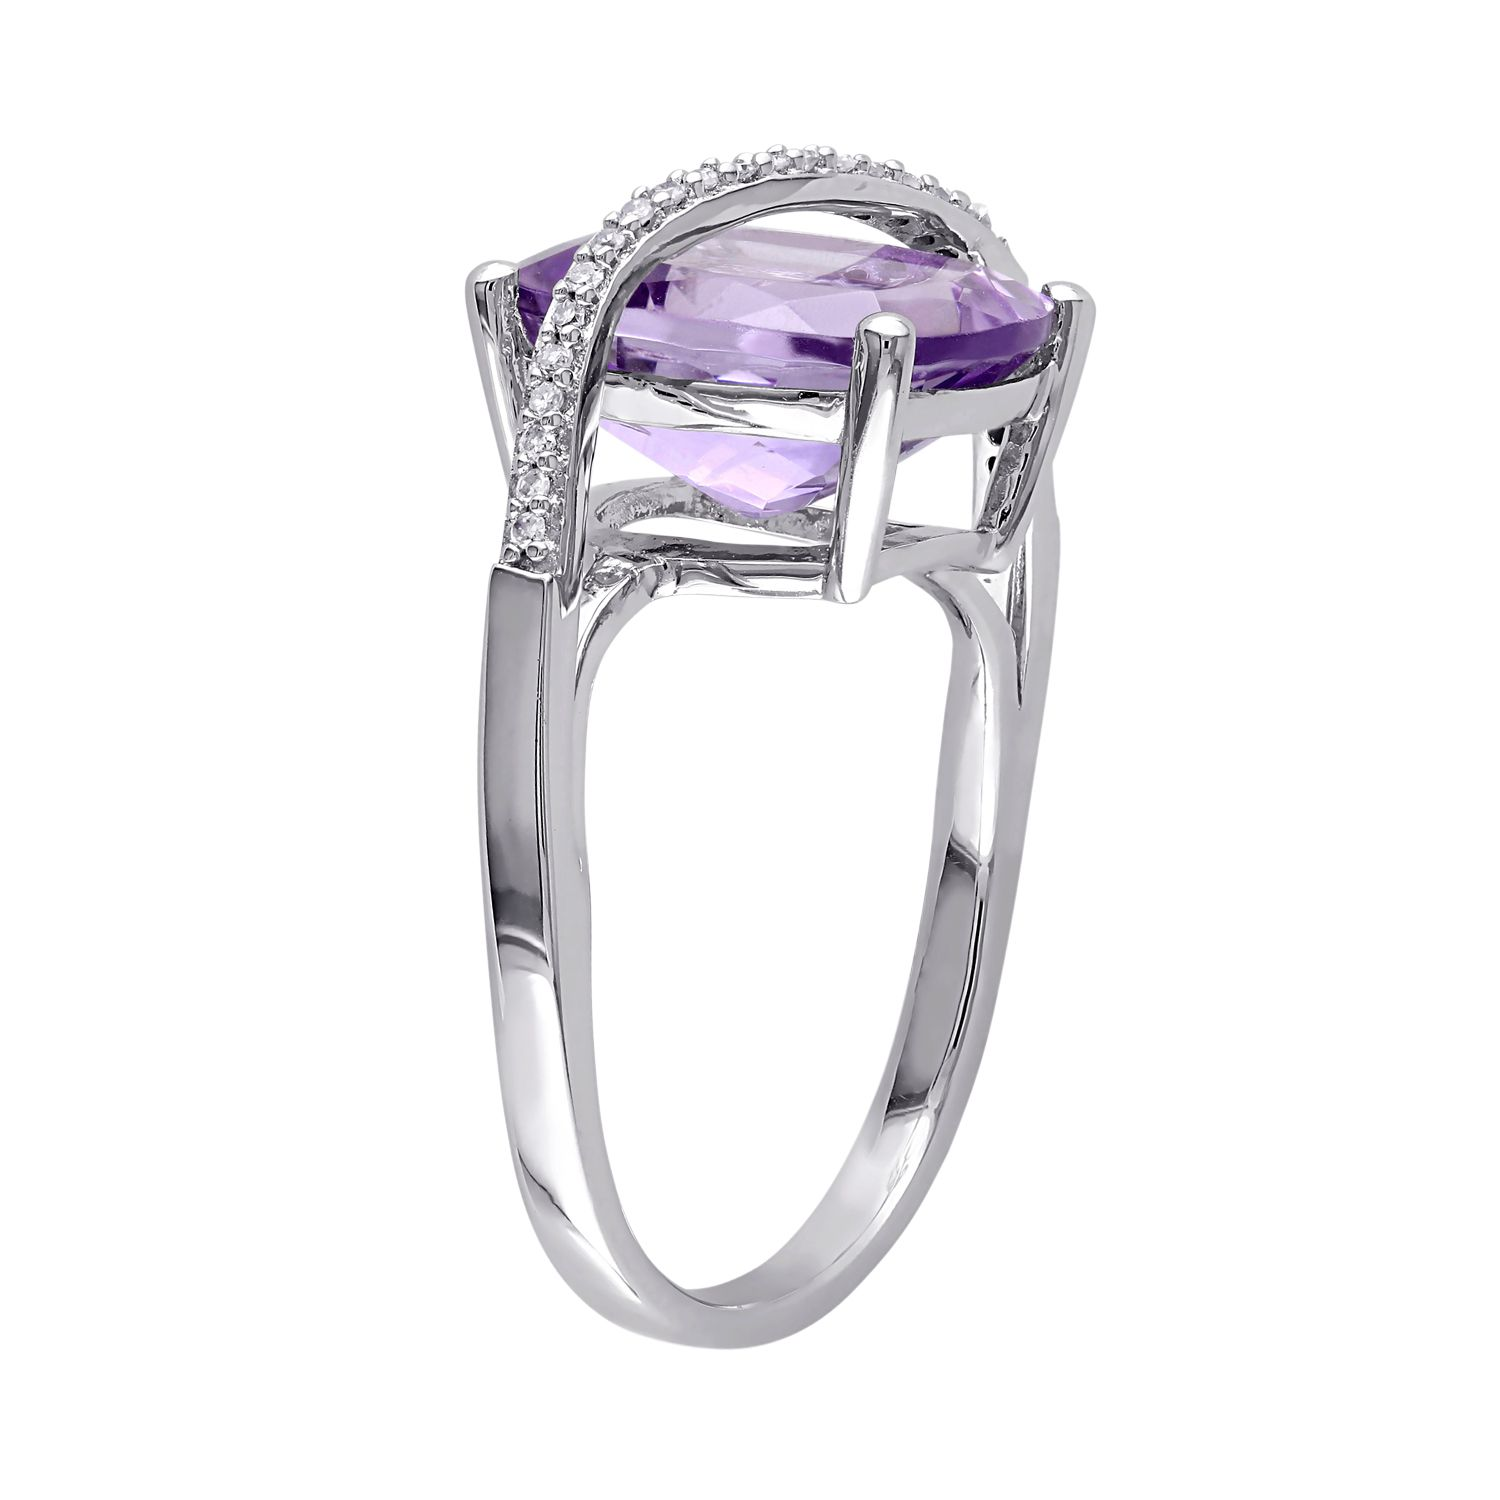 engagement for women wedding gemstone natural amethyst cushion silver jewelry purple fine from item leige ring cut in rings